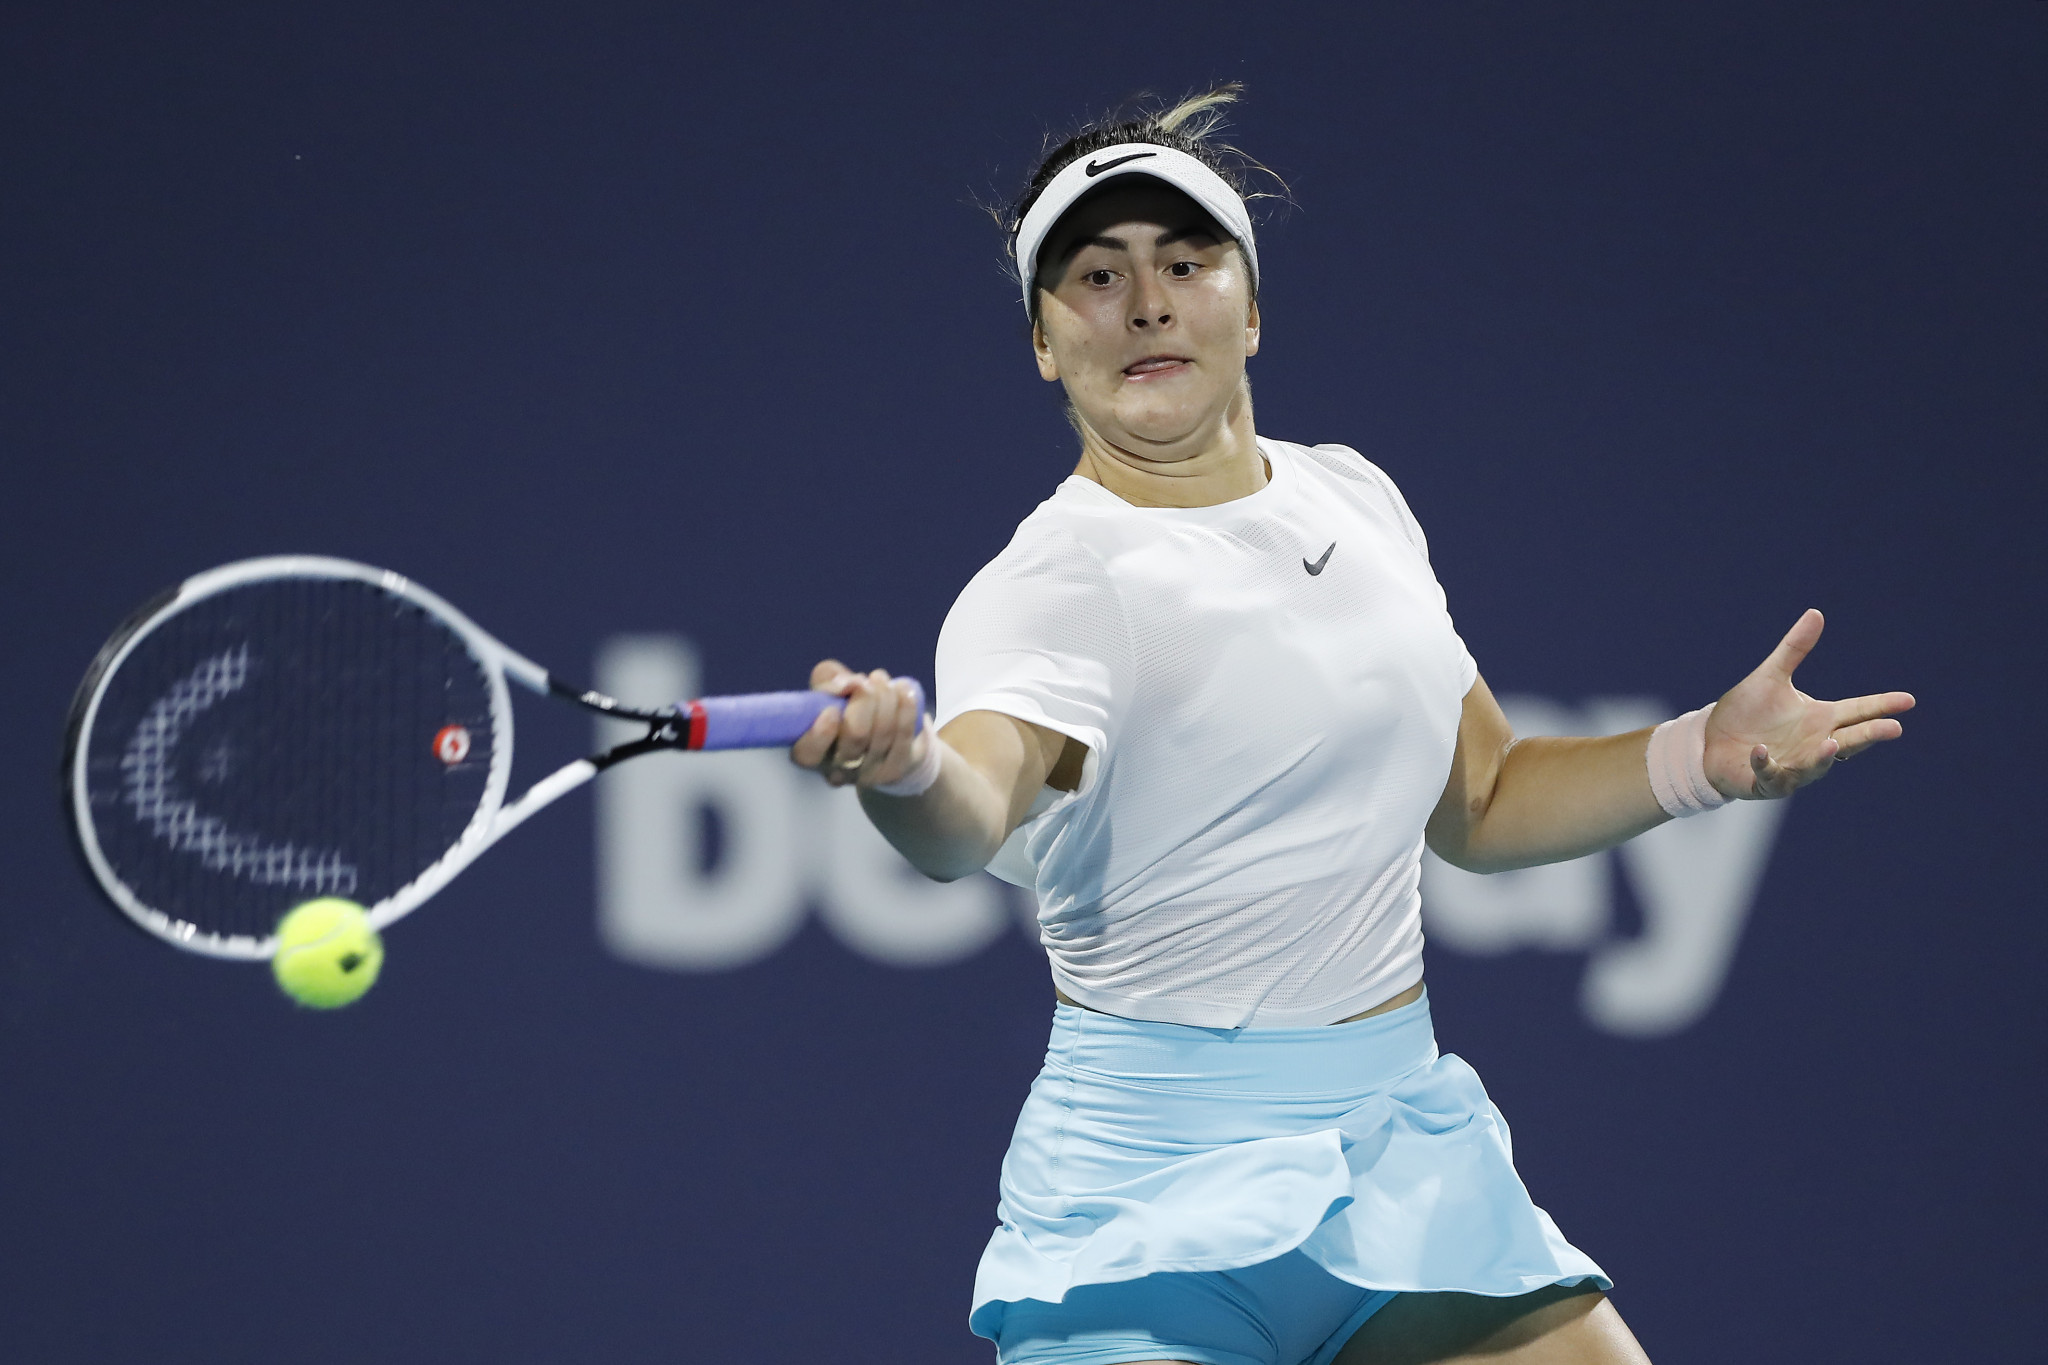 Andreescu overcomes Sakkari in early hours to reach Miami Open final